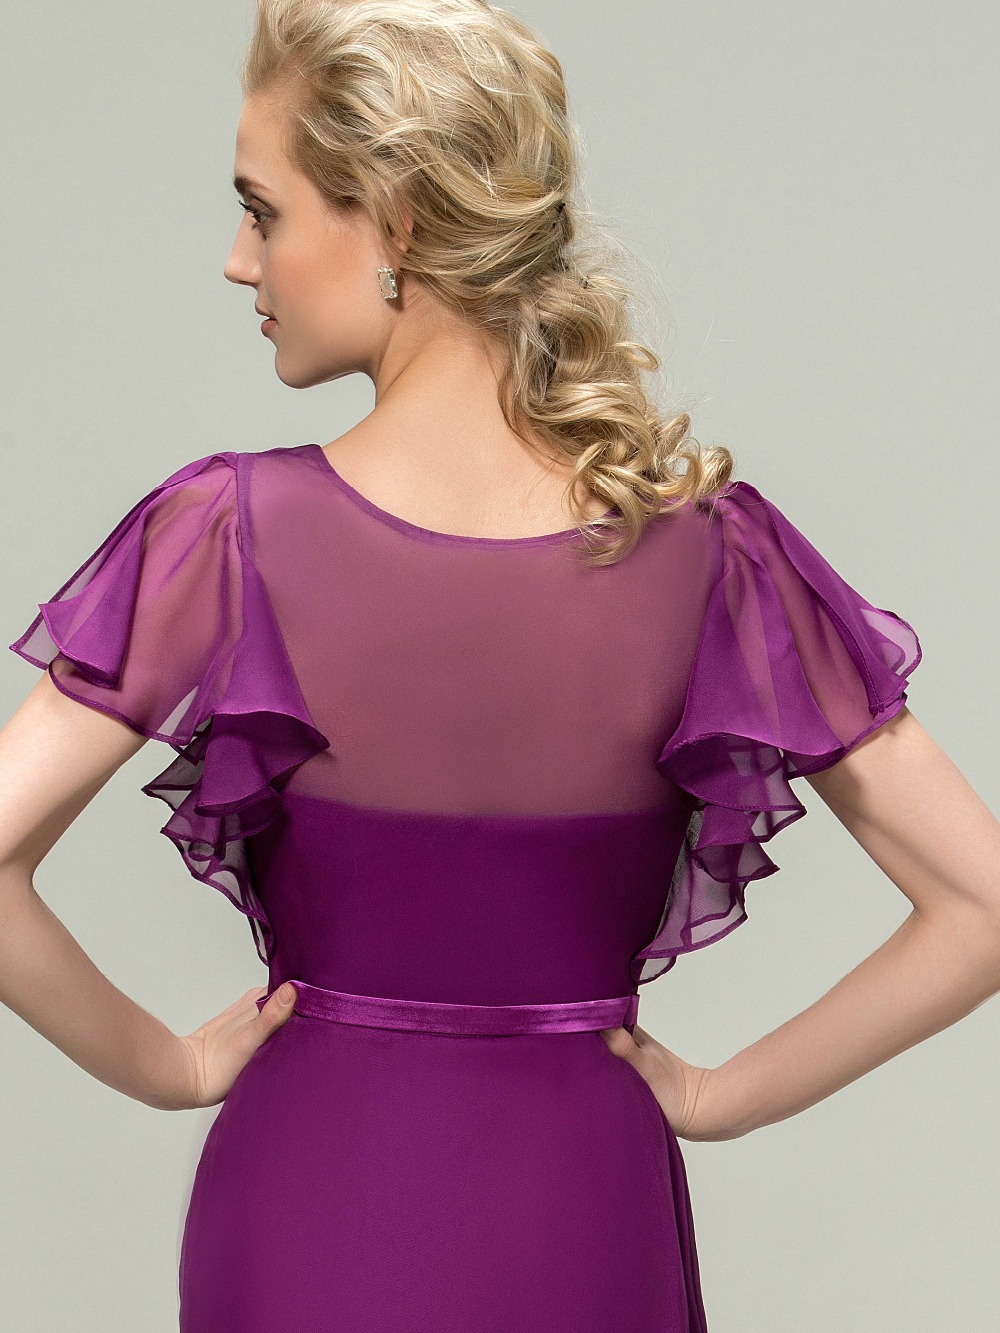 b0f17e0aaa7db DressV Long Chiffon Purple Bridesmaid Dresses 2017 A Line Ruched V neck  Short Sleeves Maid of Honor Dress Wedding Party Gowns-in Bridesmaid Dresses  from ...